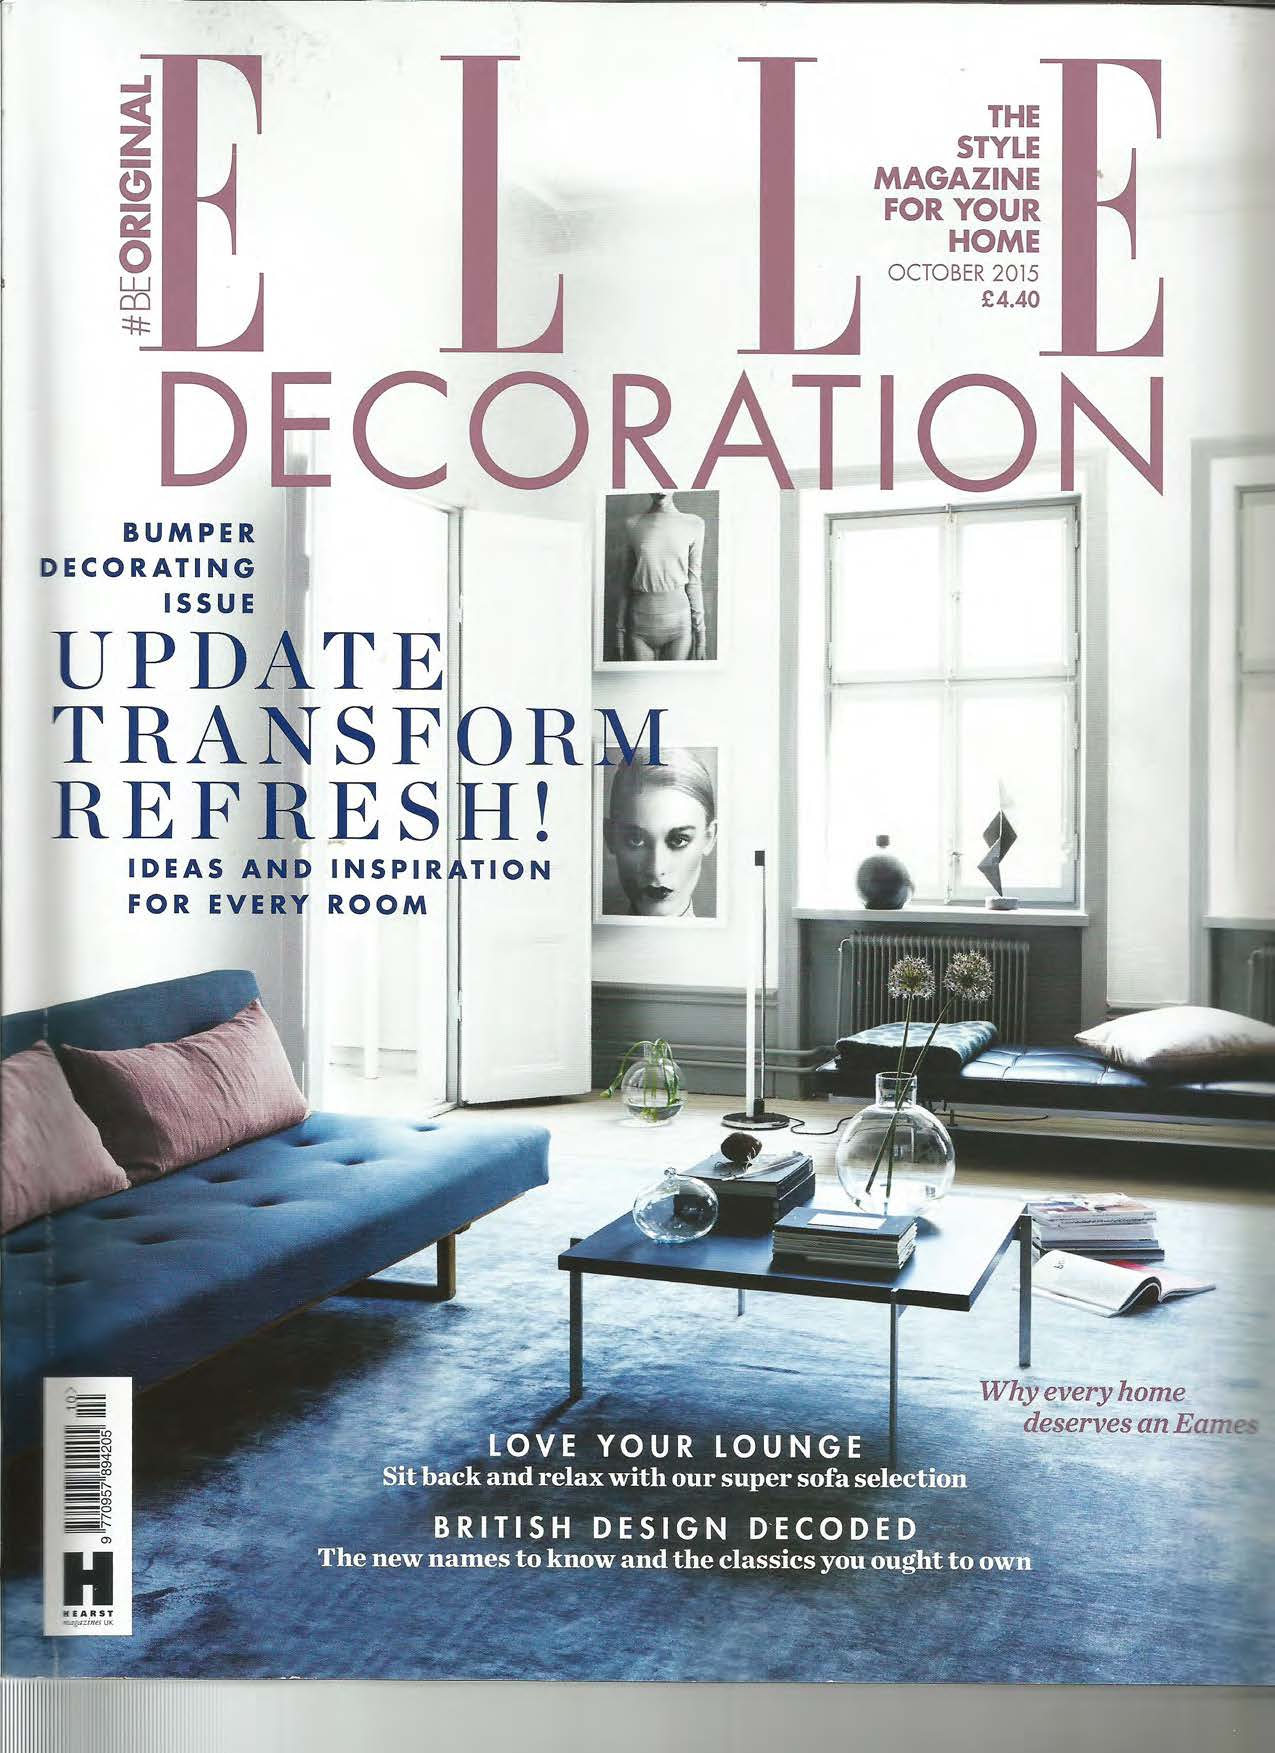 House on Water Ltd featured in ELLE DECORATION UK